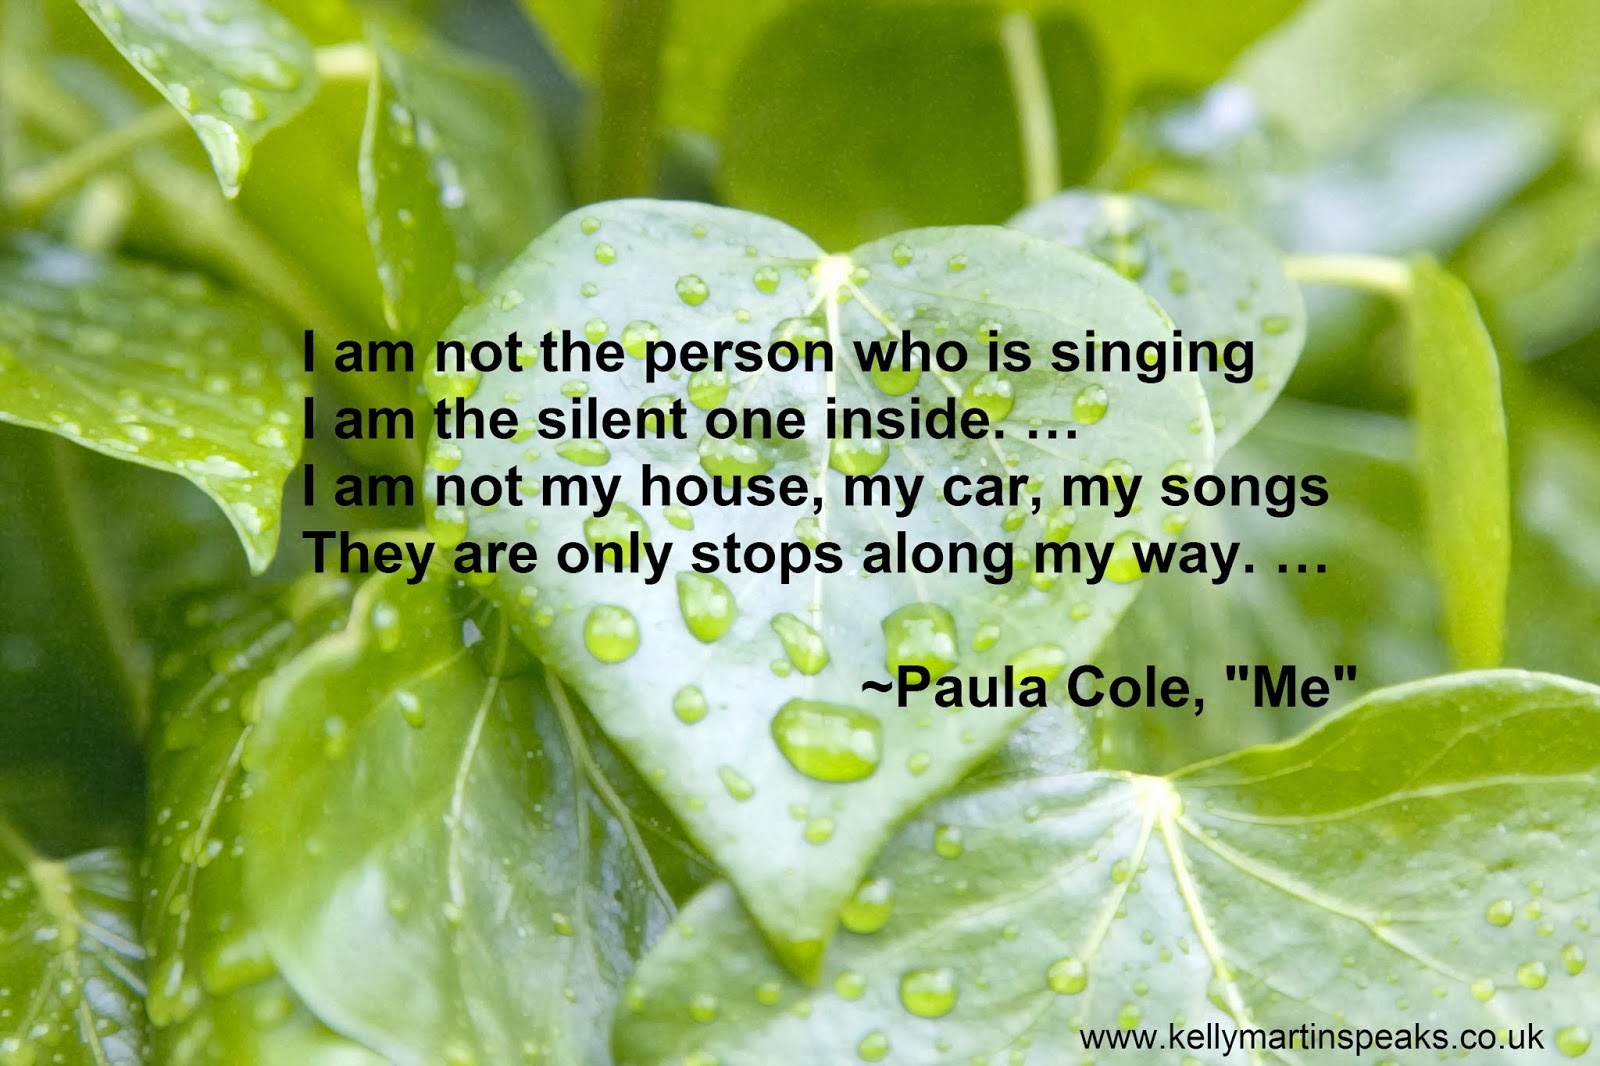 Inspirational quote on authenticity by Paula Cole